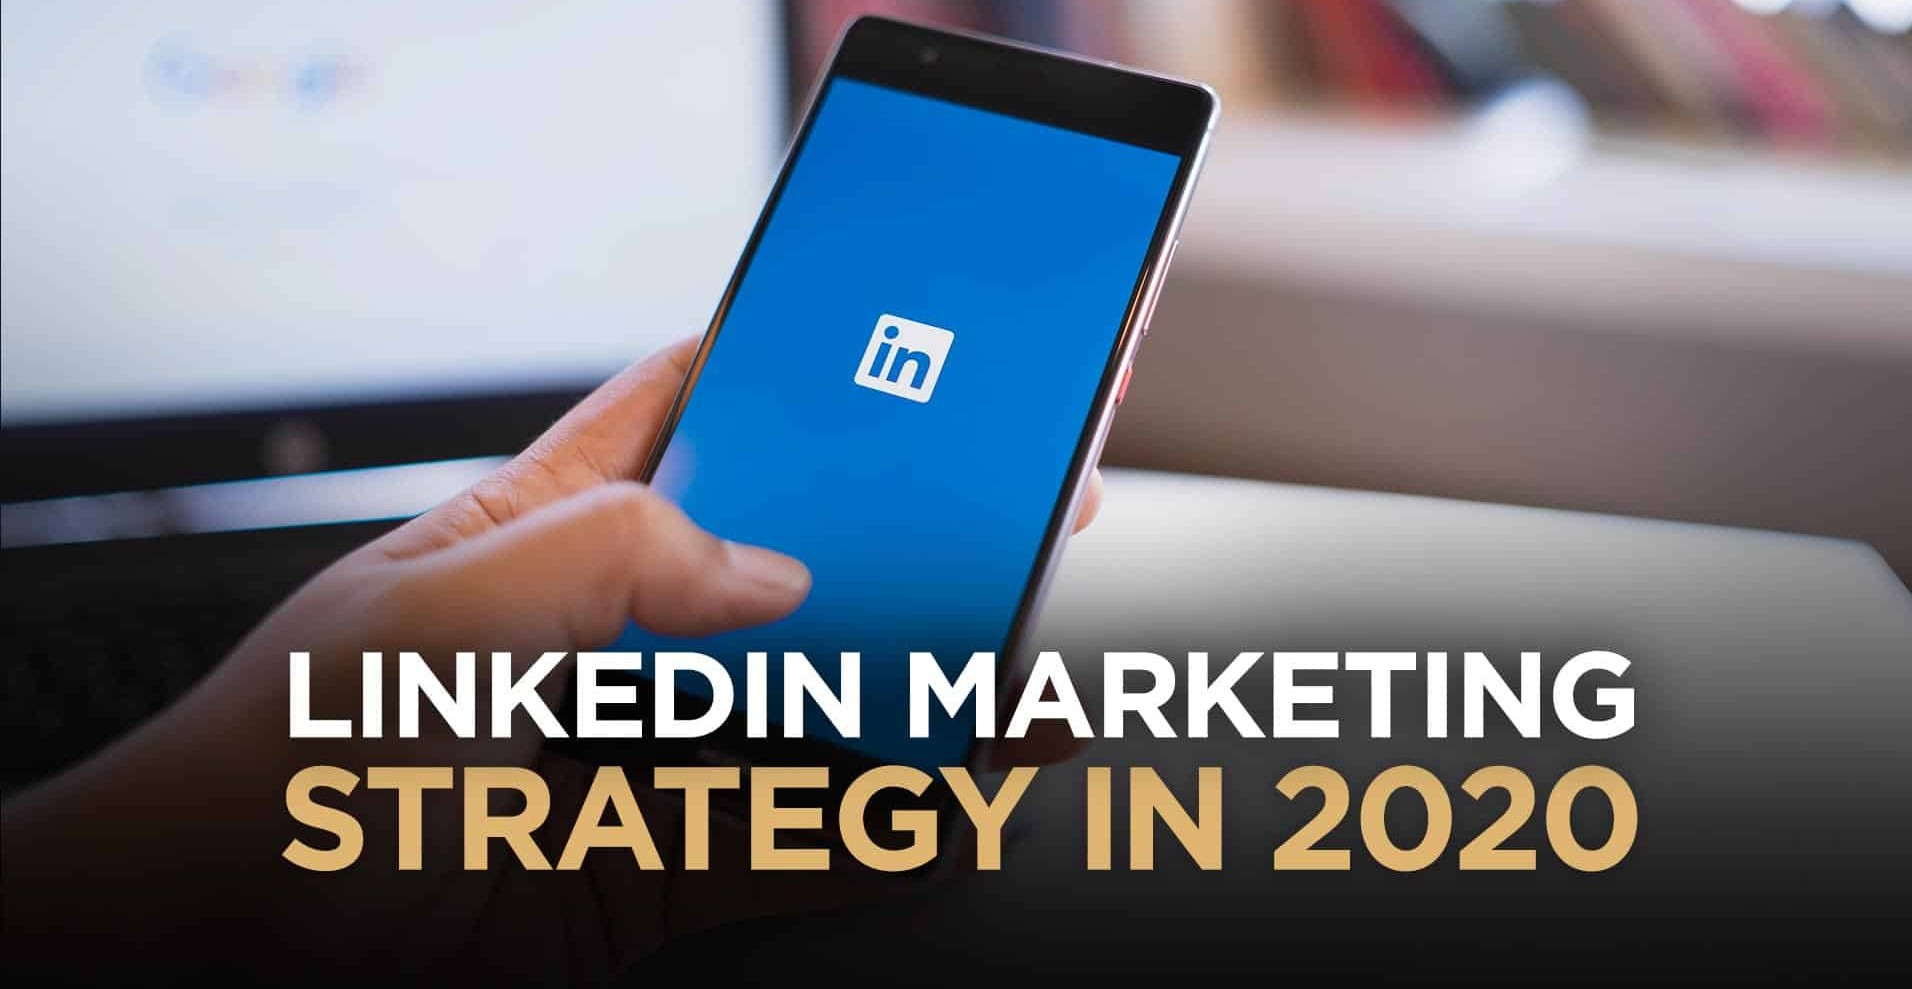 How to make effective LinkedIn Marketing Strategy in 2020